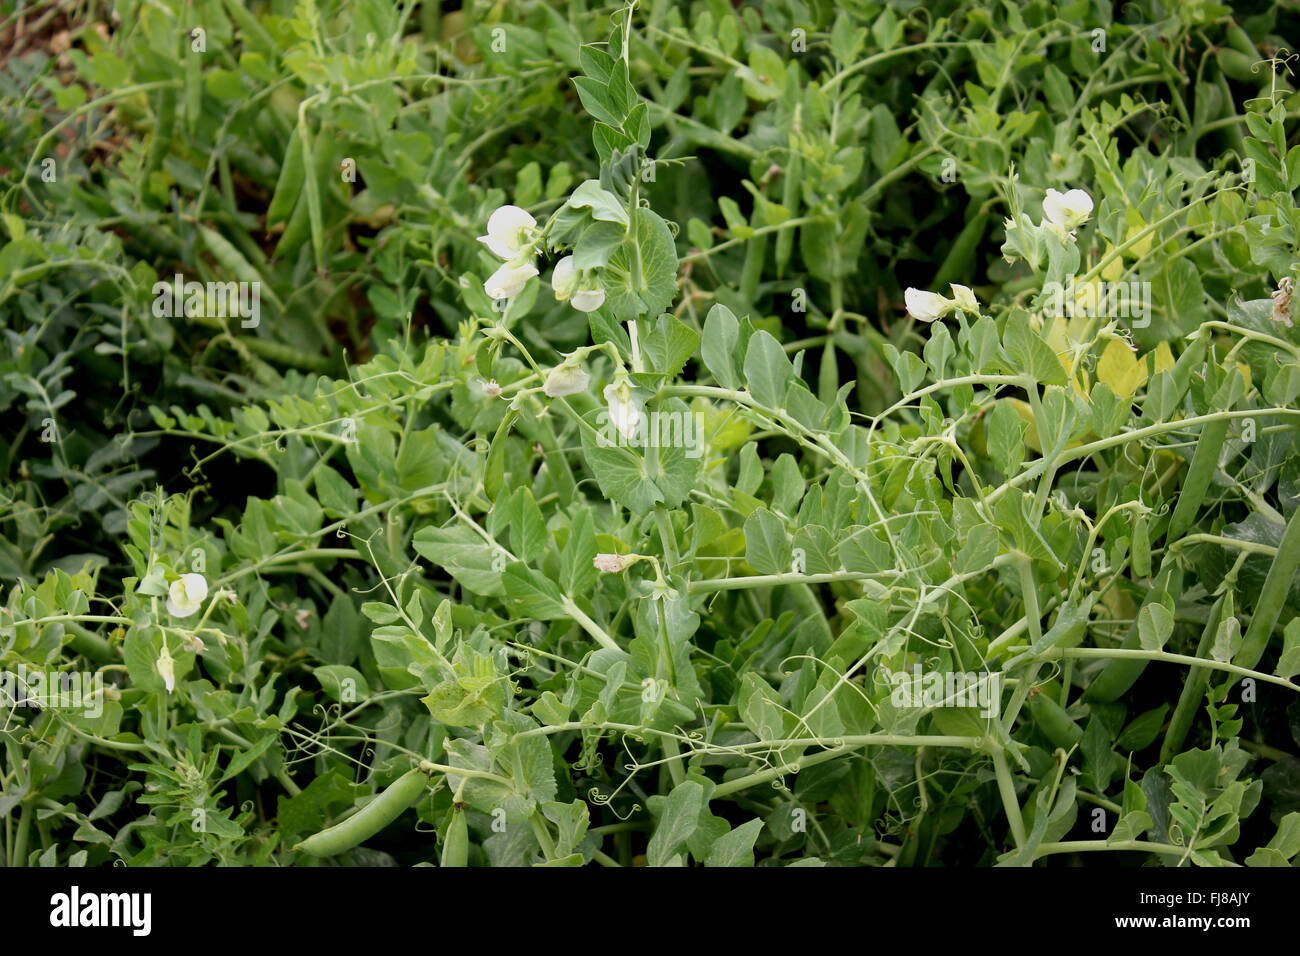 Garden Pea, Pisum sativum, herb with pinnate leaves with terminal tendrils for support, green pods with rounded - Stock Image